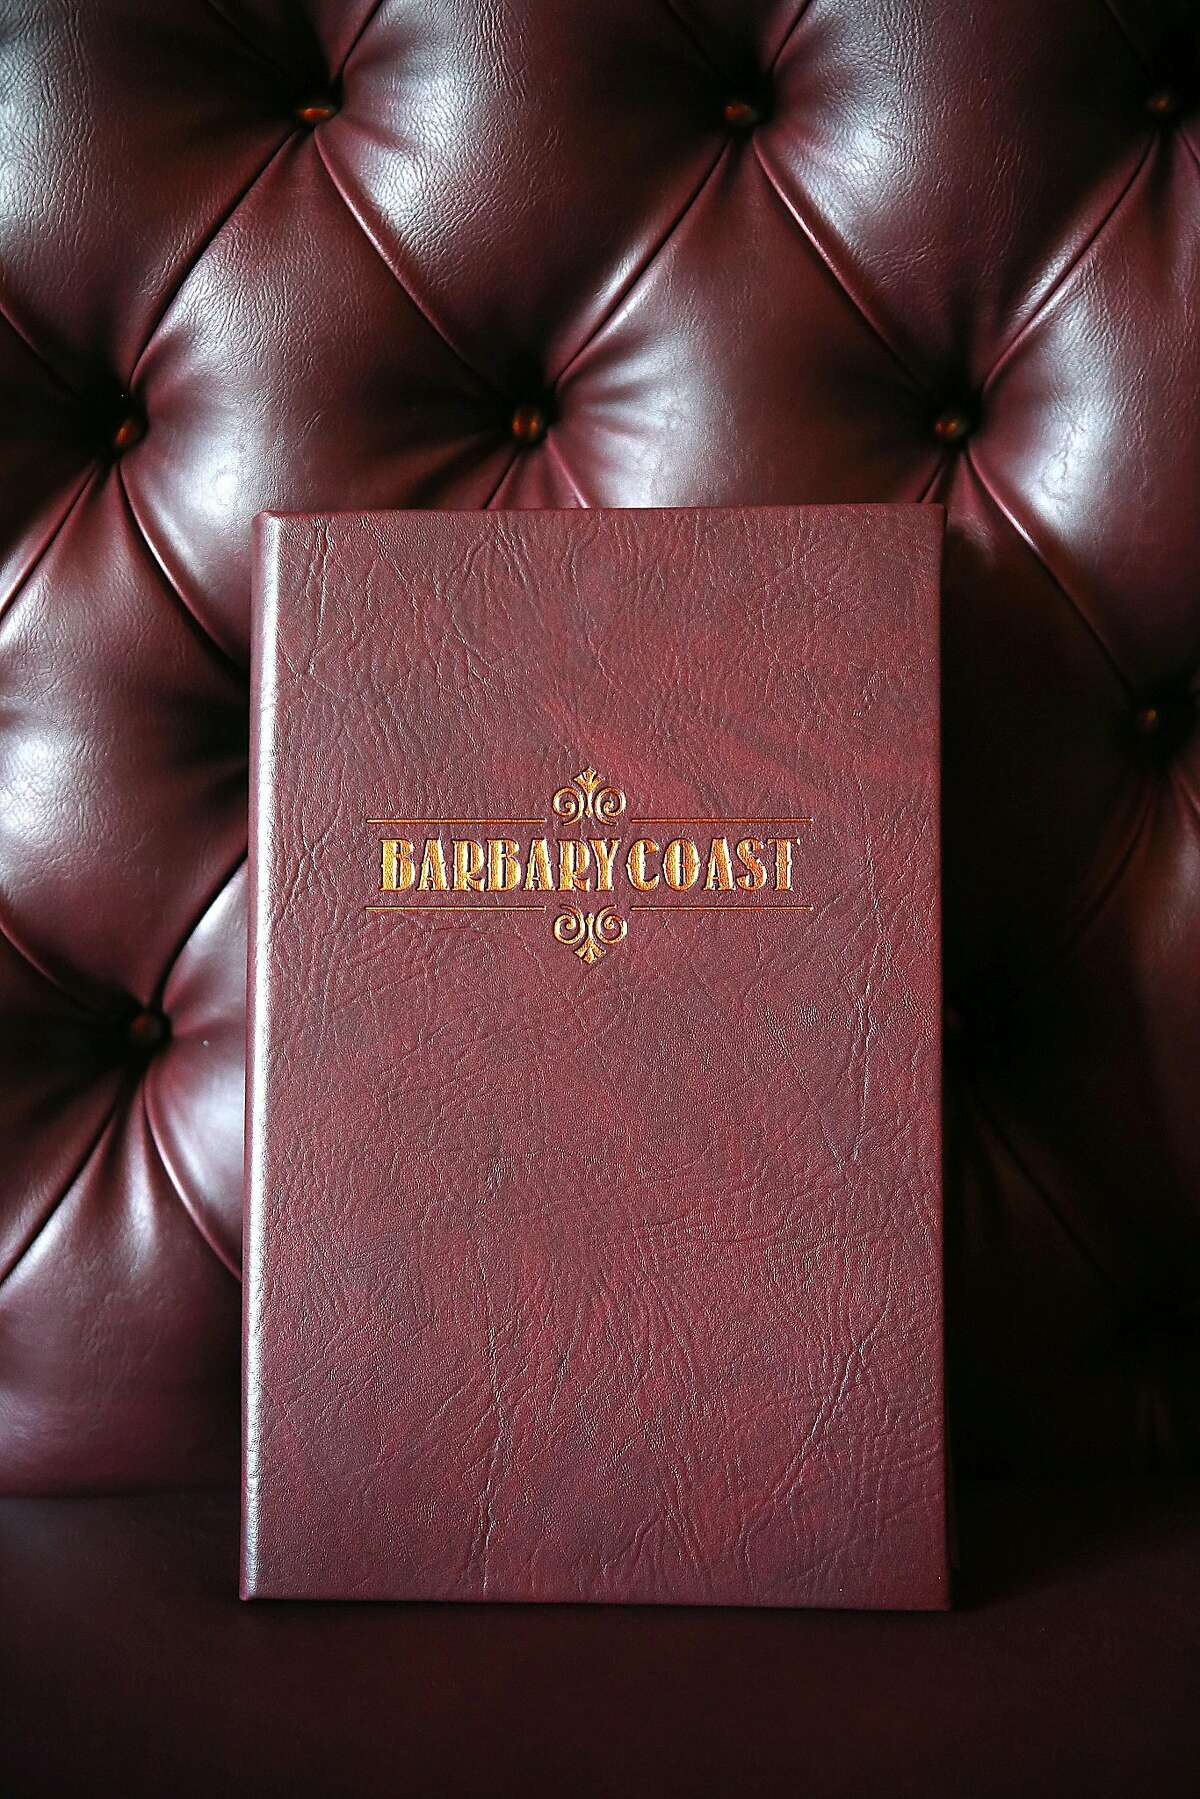 Menu cover displayed at the new Barbary Coast SF cannabis lounge on Friday, March 10, 2017, in San Francisco, Calif.